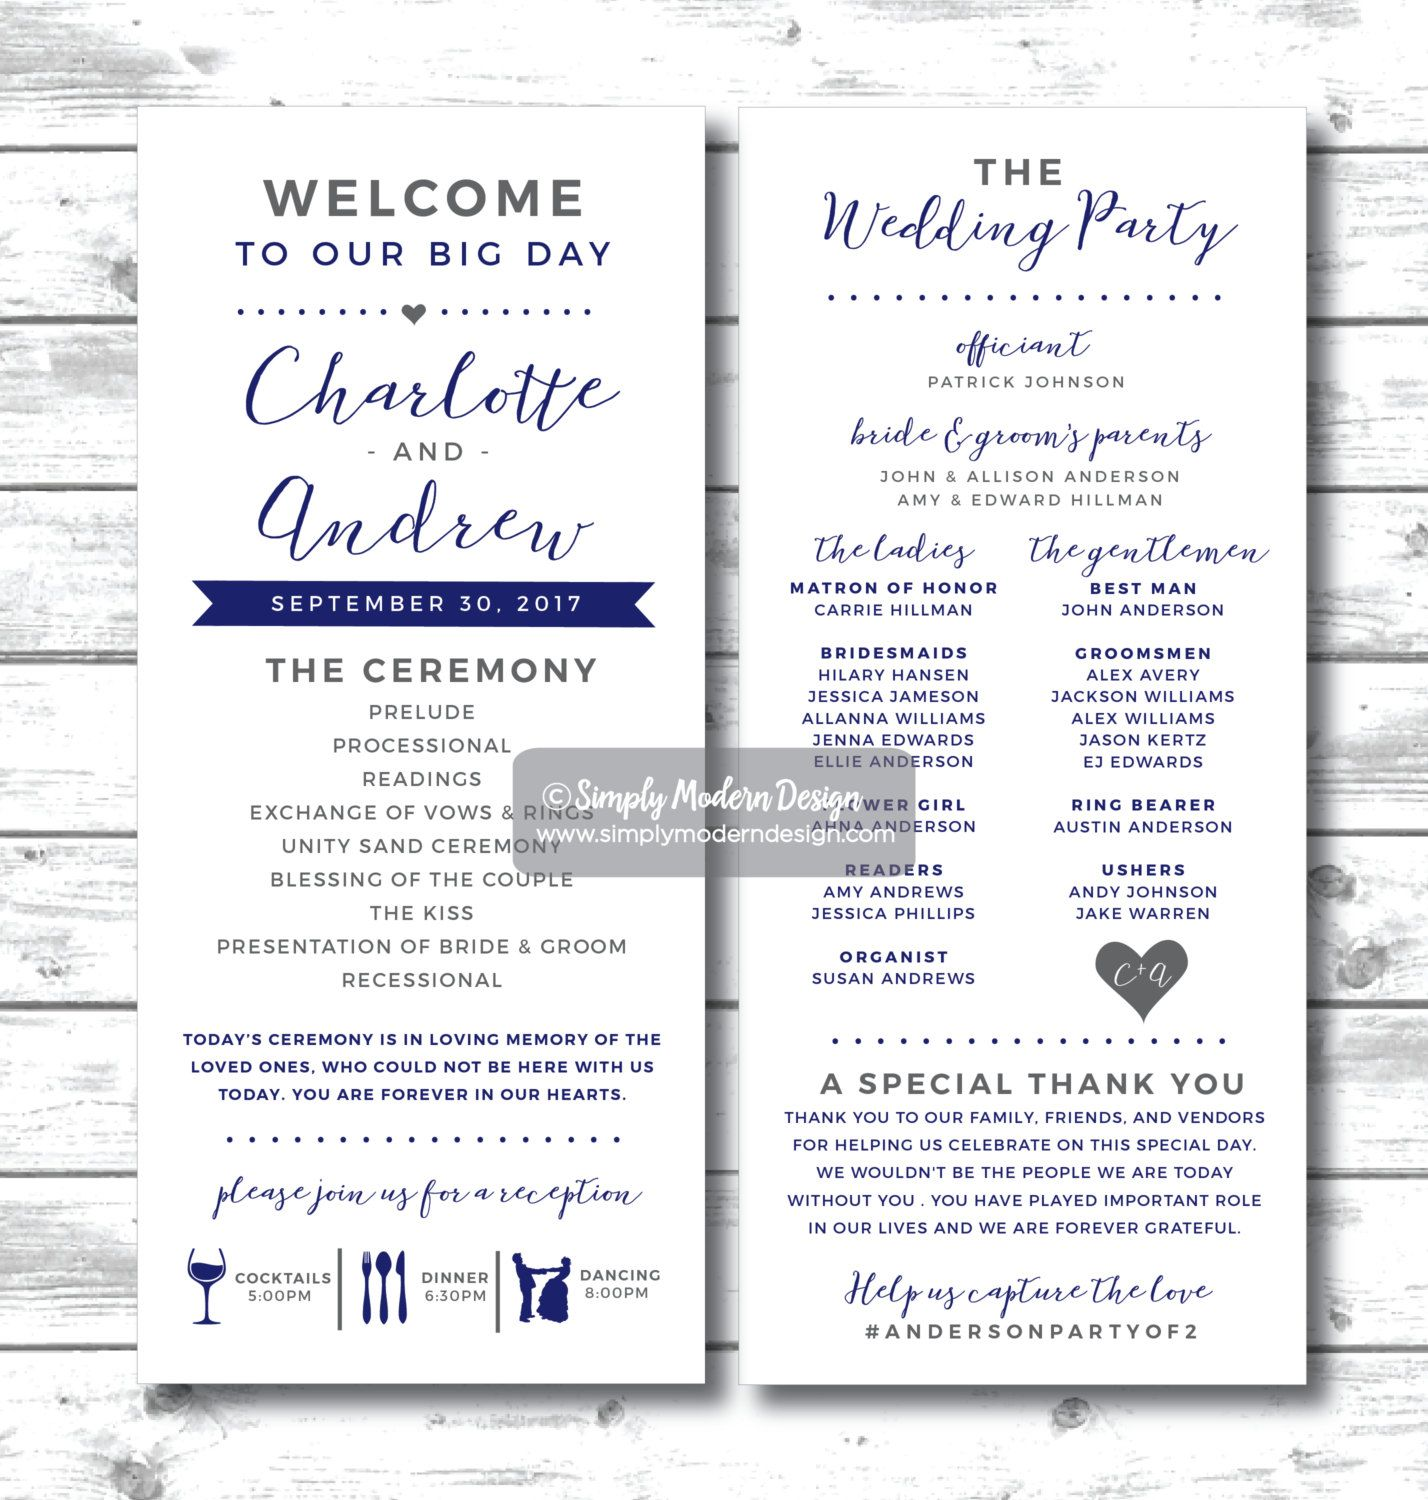 Unique Wedding Reception Program Ideas: Wedding Program, Ceremony, Fun, Unique, Modern, Reception